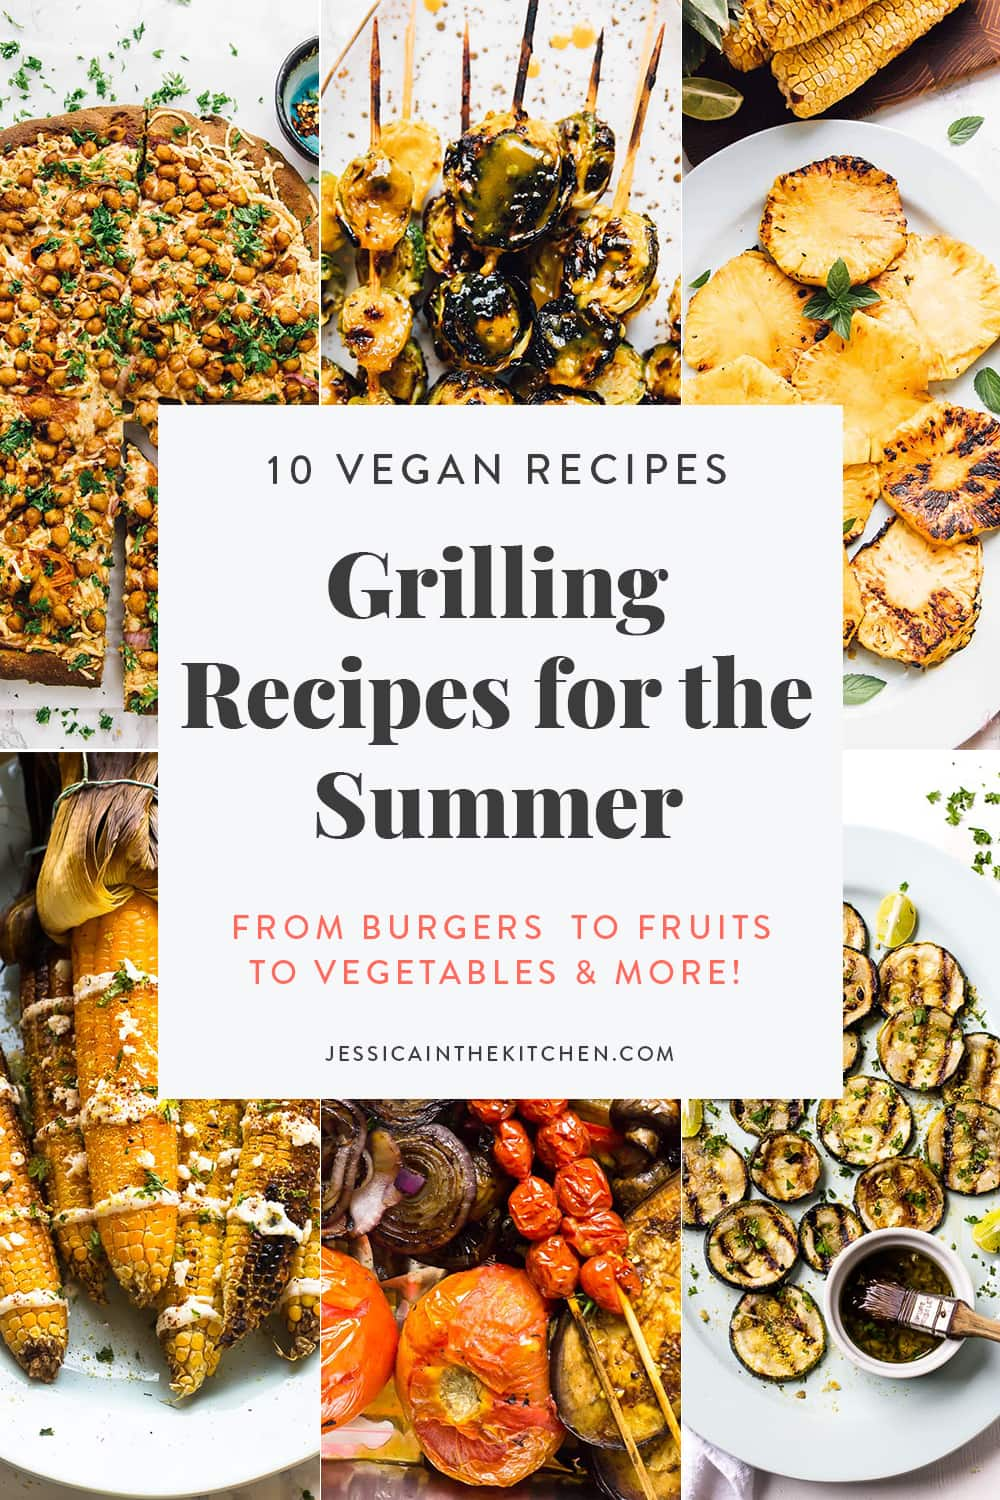 Image of 6 photos of grilled recipes with text.